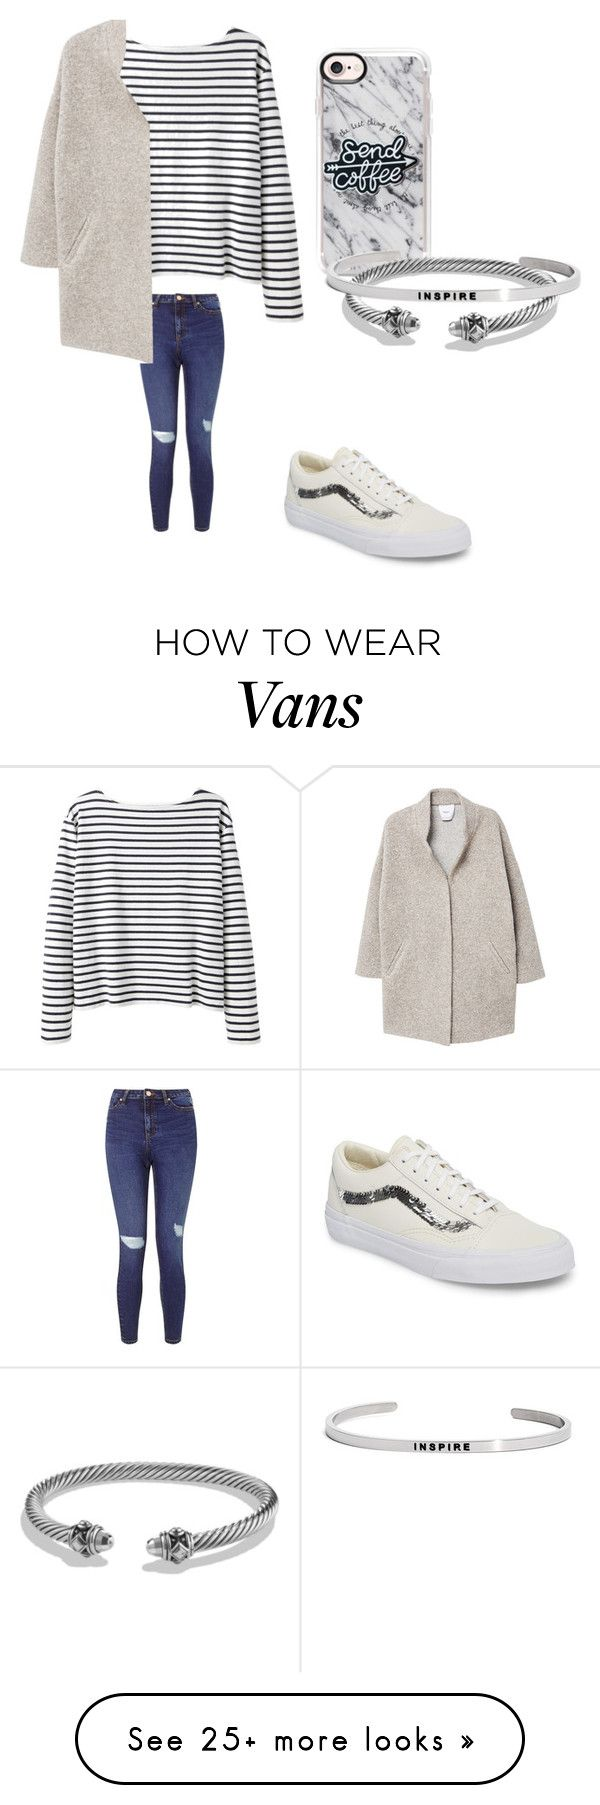 """Senden Coffee and inspire"" by sarahfohlen on Polyvore featuring Wood Wood, Vans, Miss Selfridge, Casetify, MANGO, David Yurman, MantraBand, Winter and 2k18"